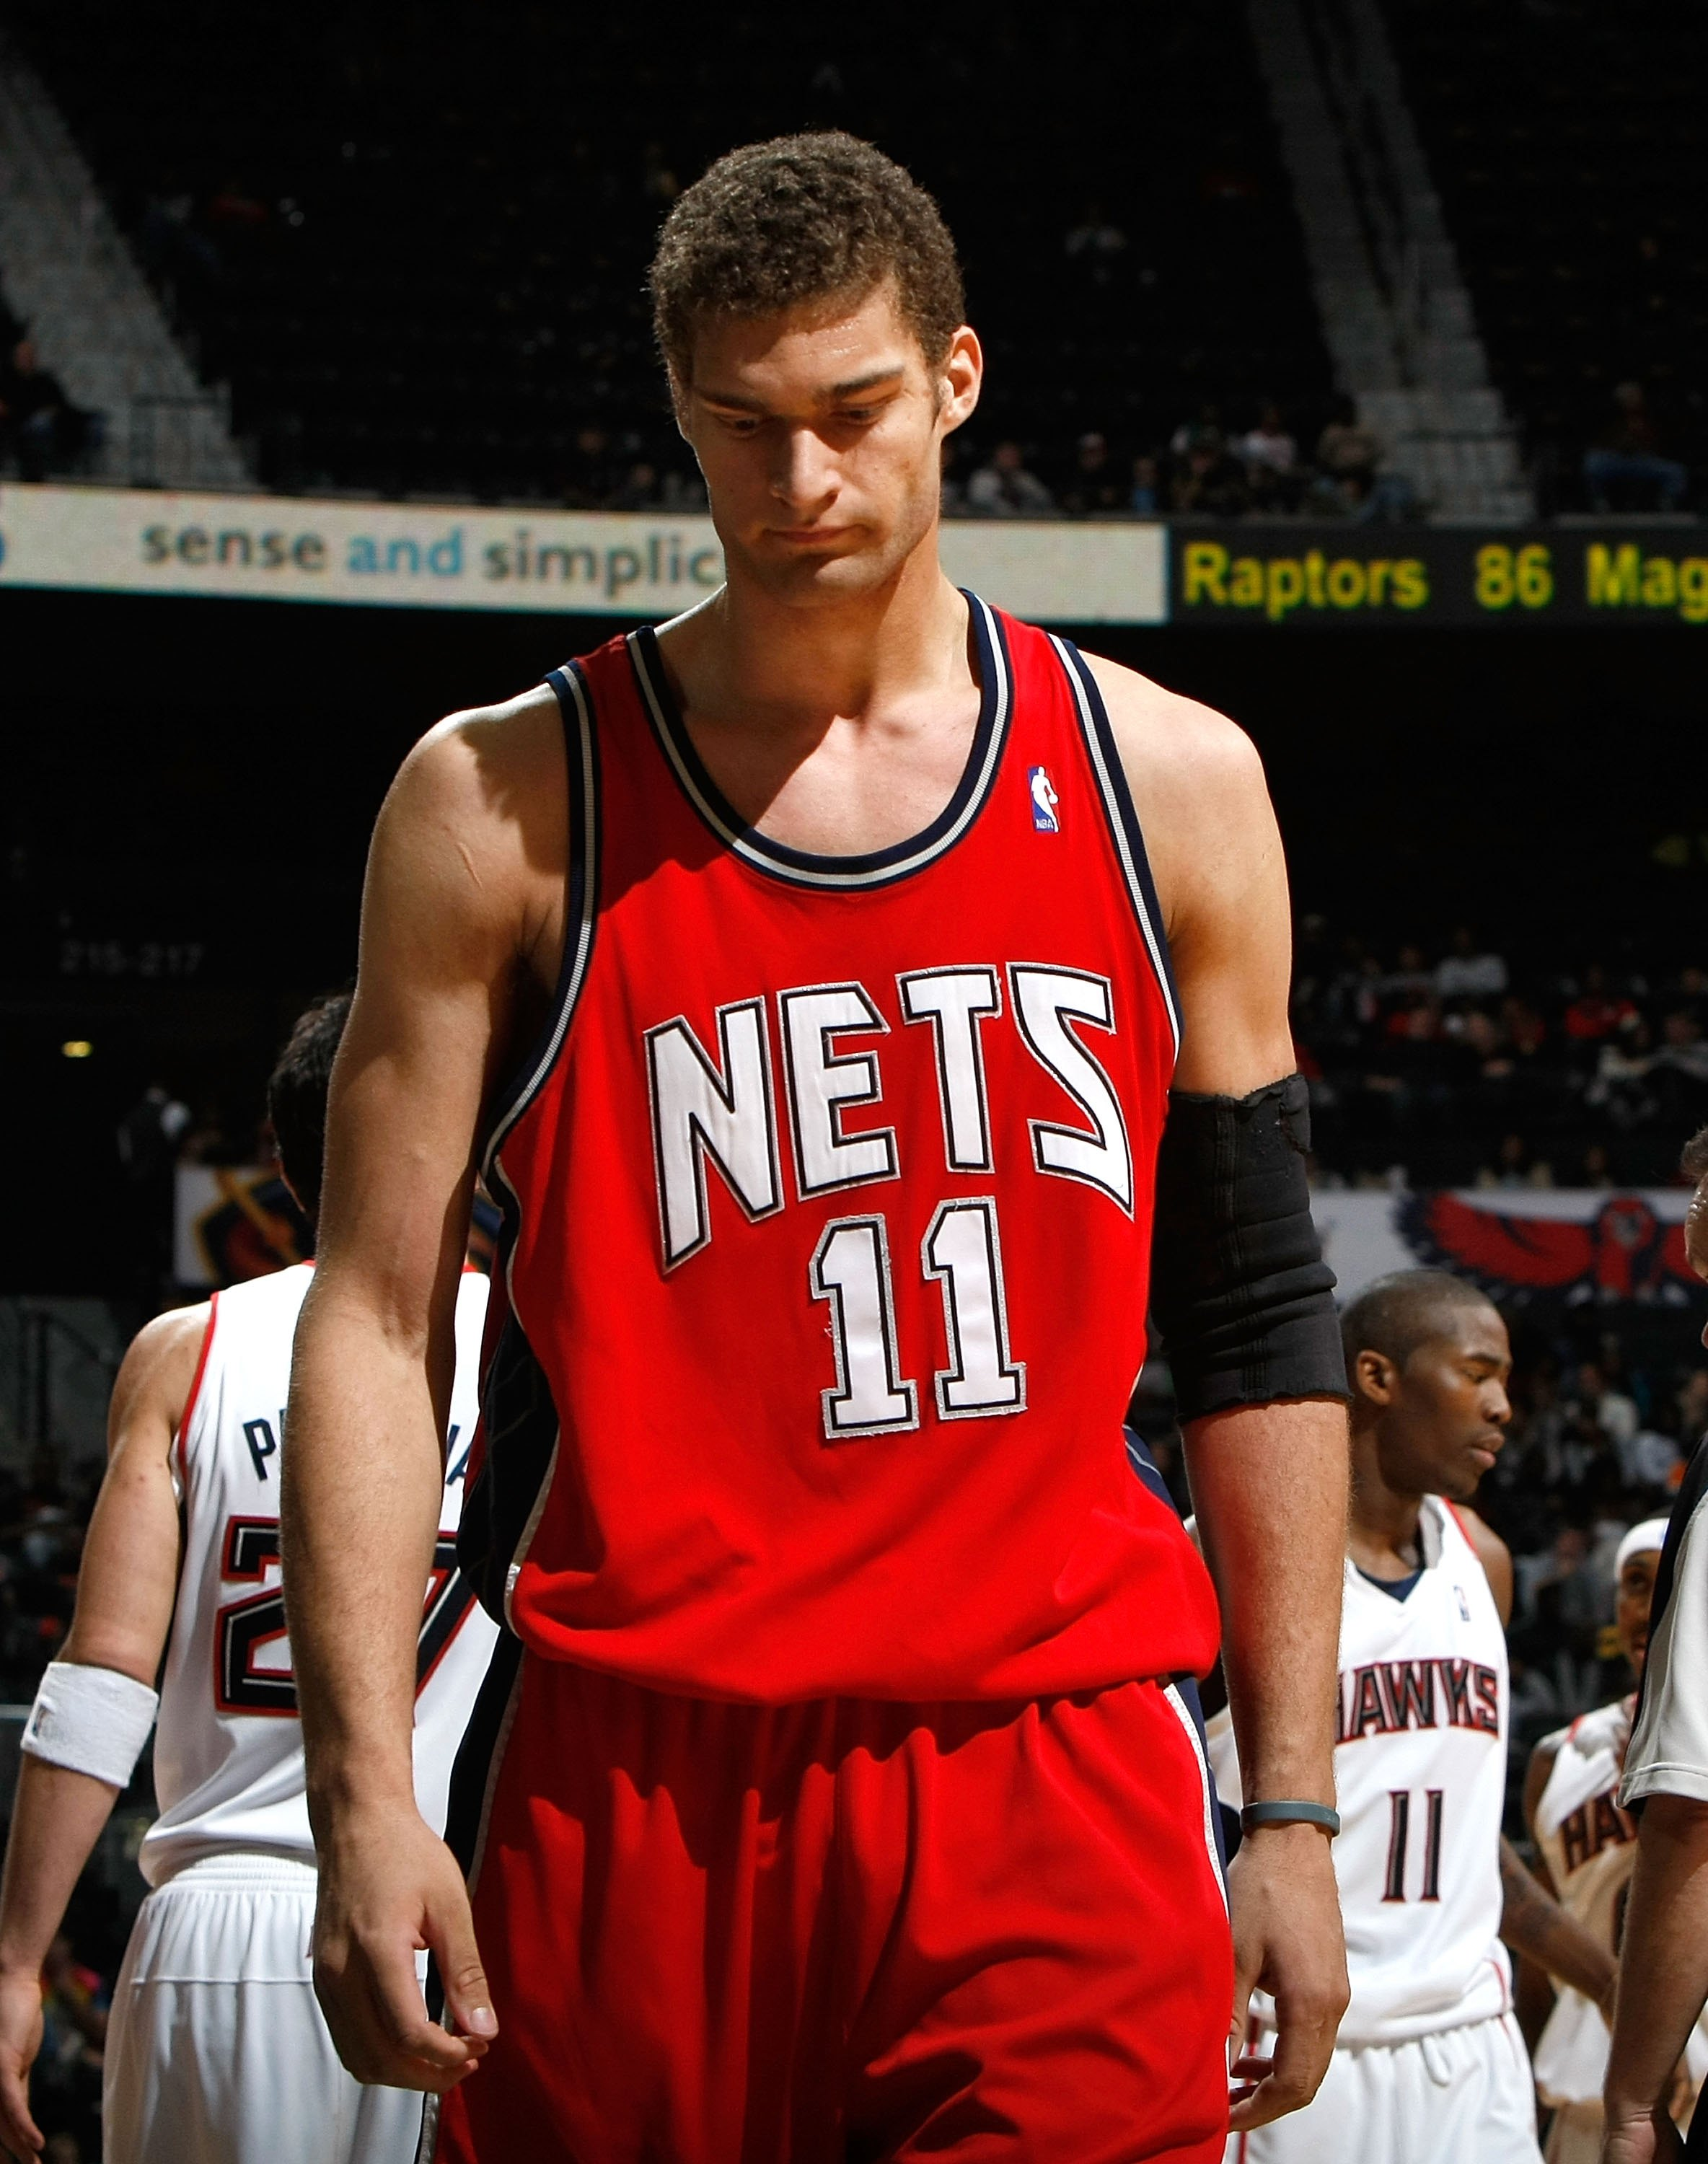 ATLANTA - JANUARY 06:  Brook Lopez #11 of the New Jersey Nets against the Atlanta Hawks at Philips Arena on January 6, 2010 in Atlanta, Georgia.  NOTE TO USER: User expressly acknowledges and agrees that, by downloading and/or using this Photograph, User